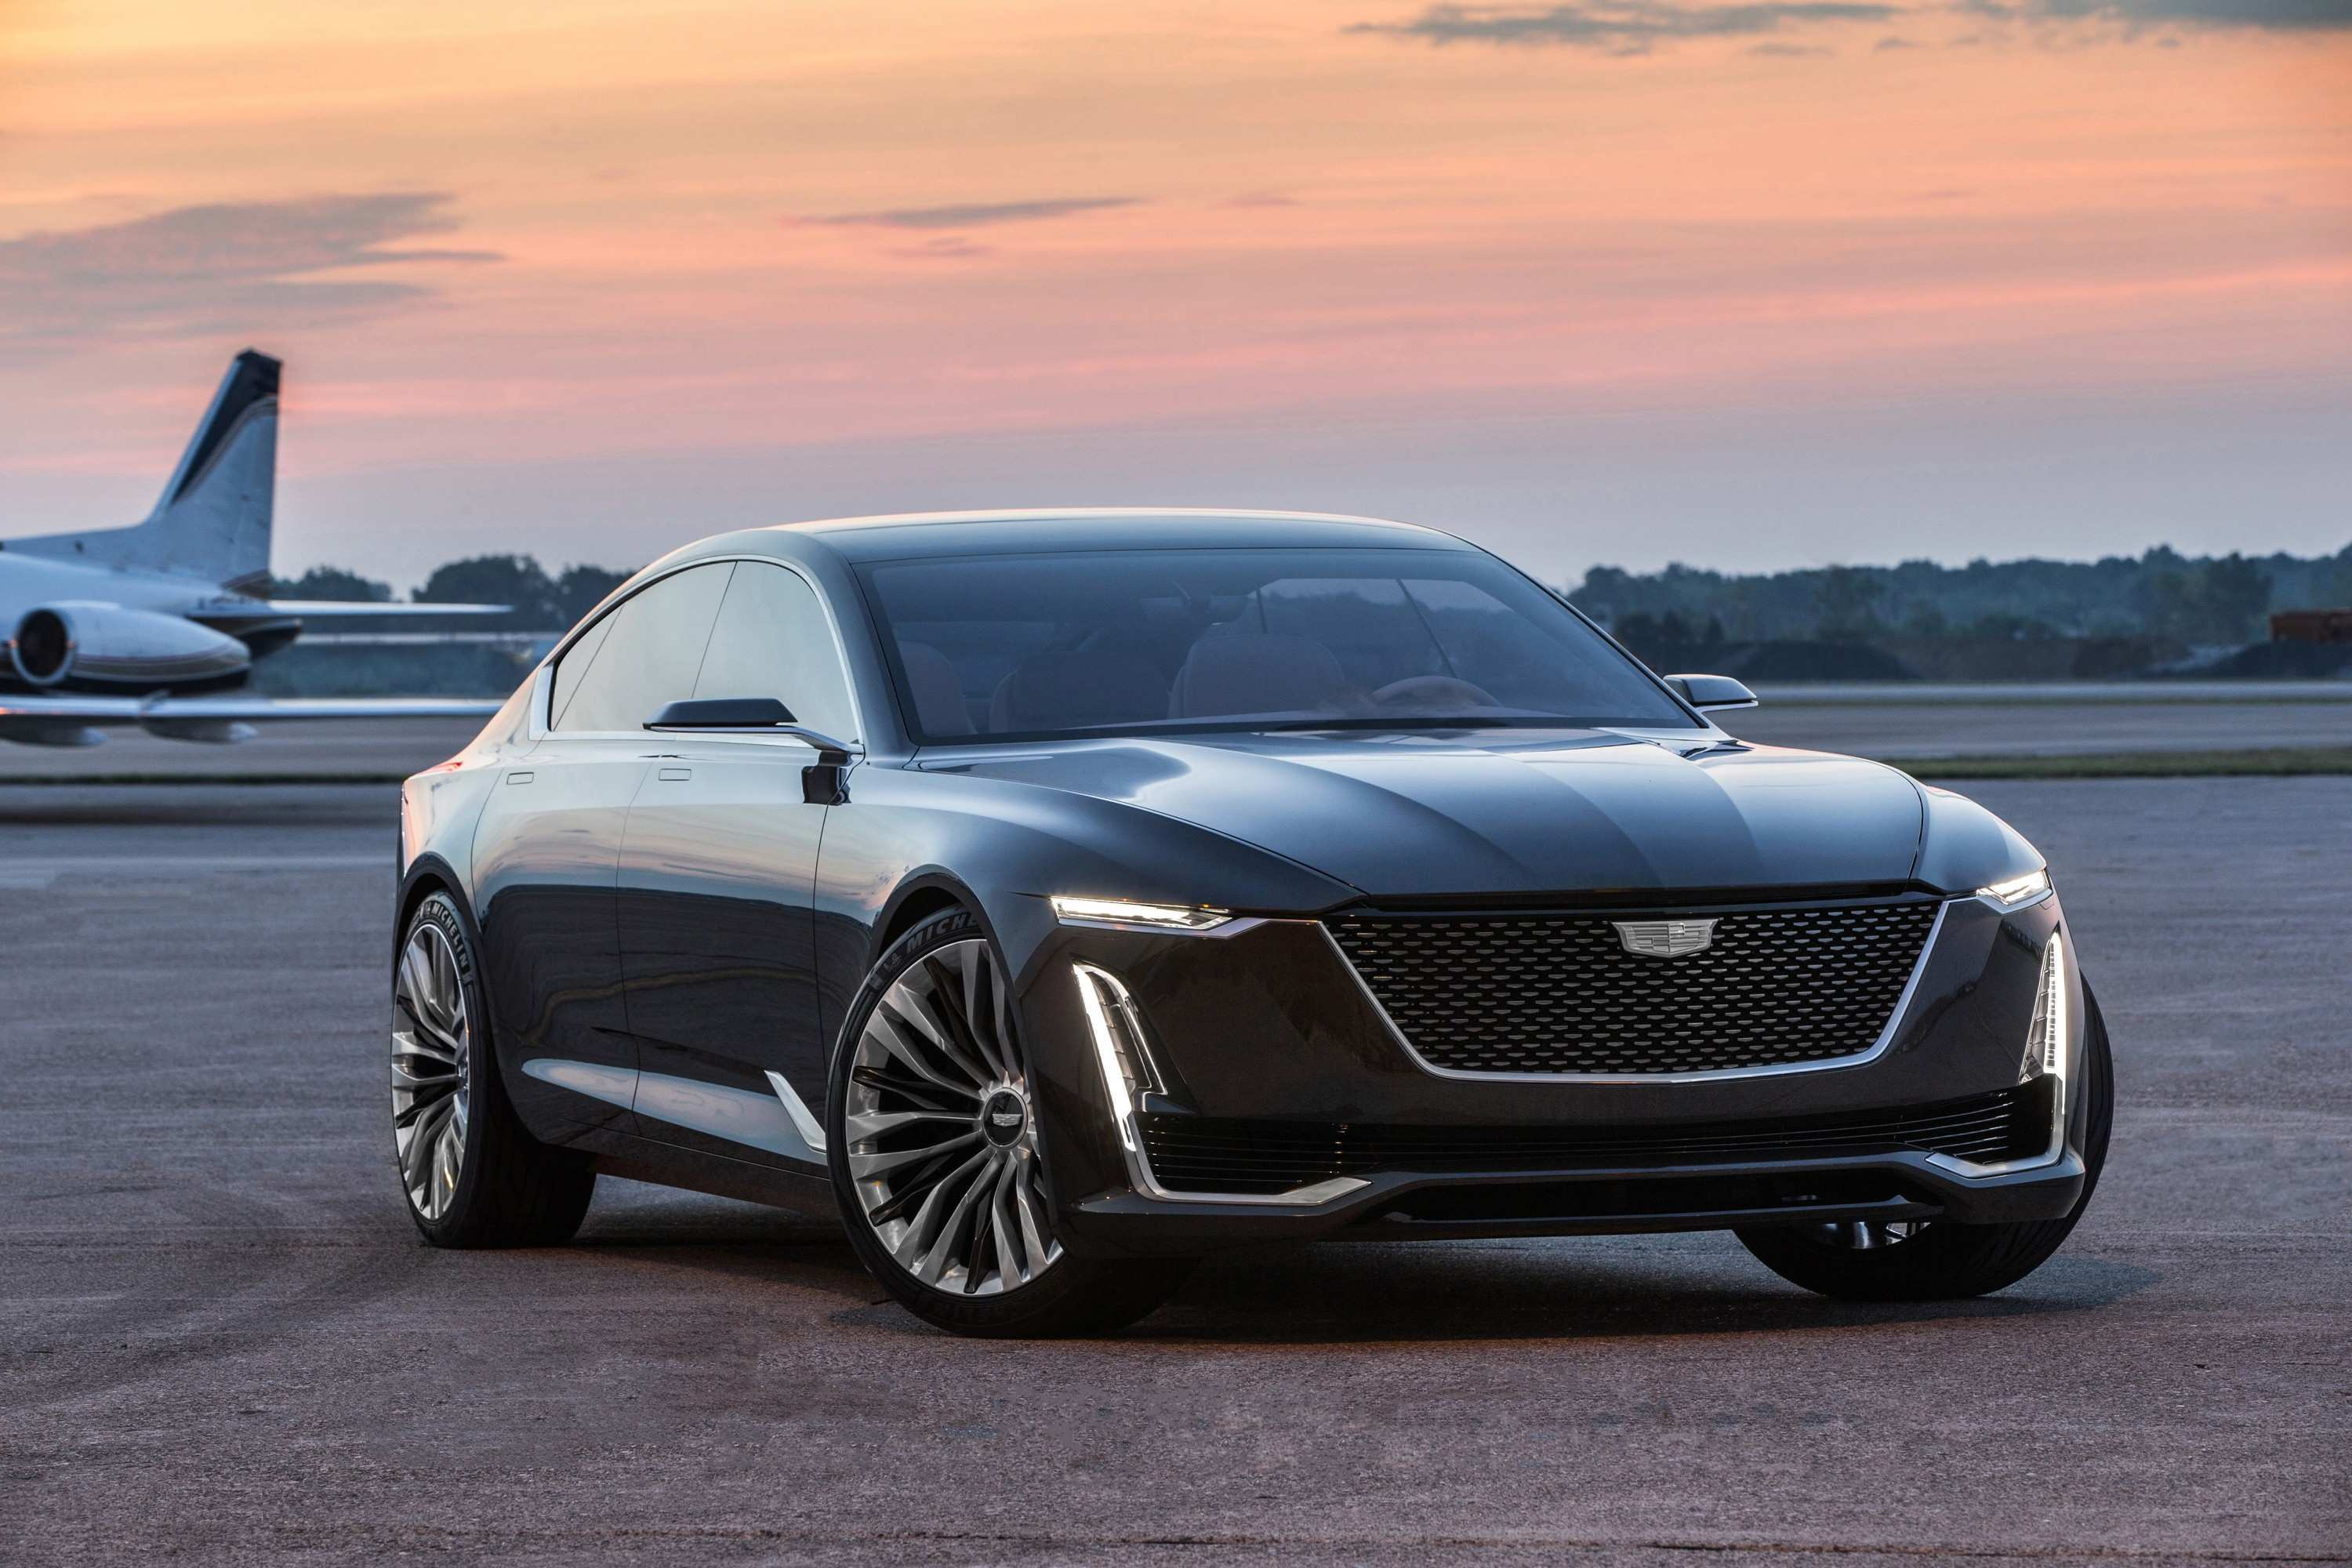 42 Concept of 2020 Cadillac Ats Pricing for 2020 Cadillac Ats